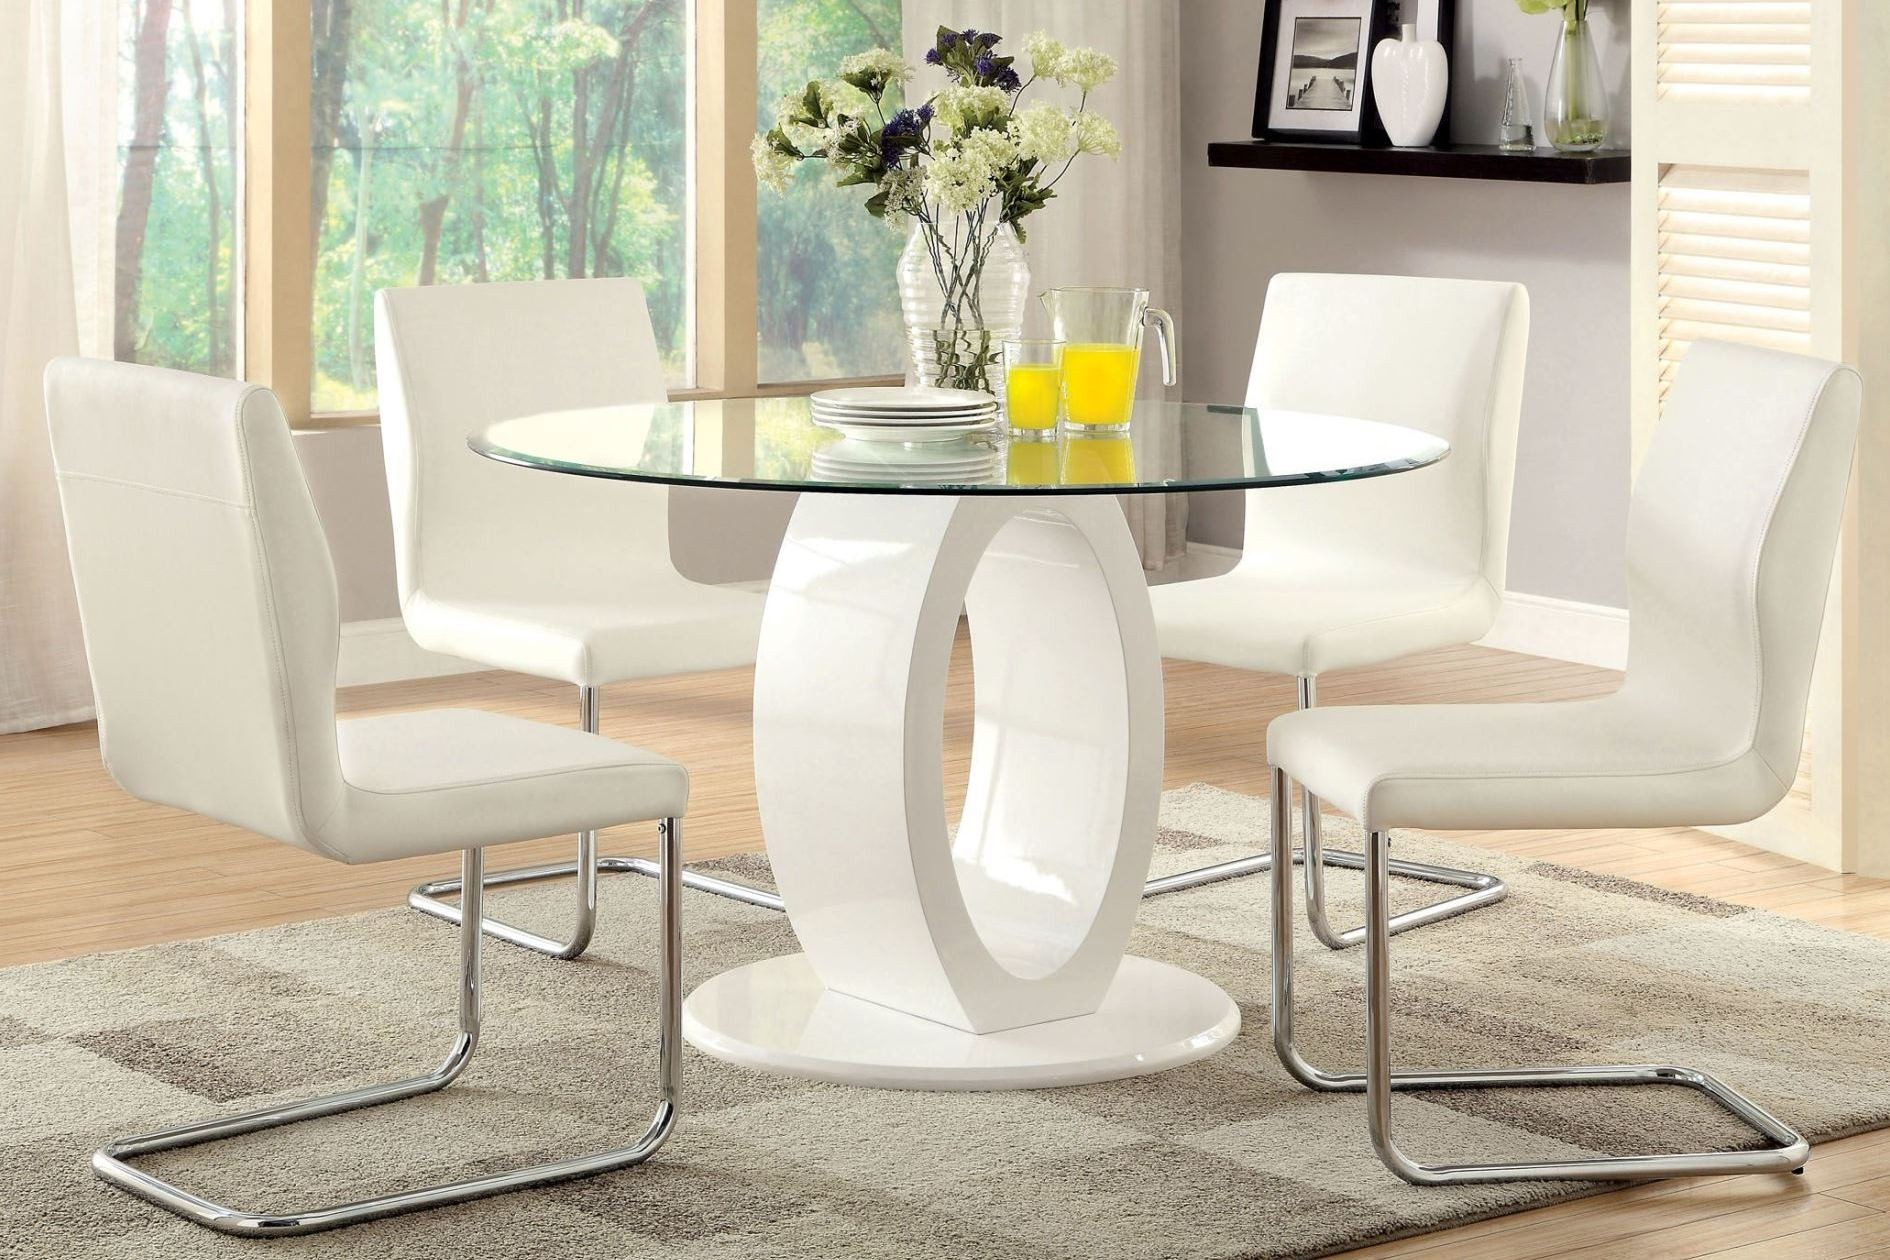 Dining Room Set In White Leatherette